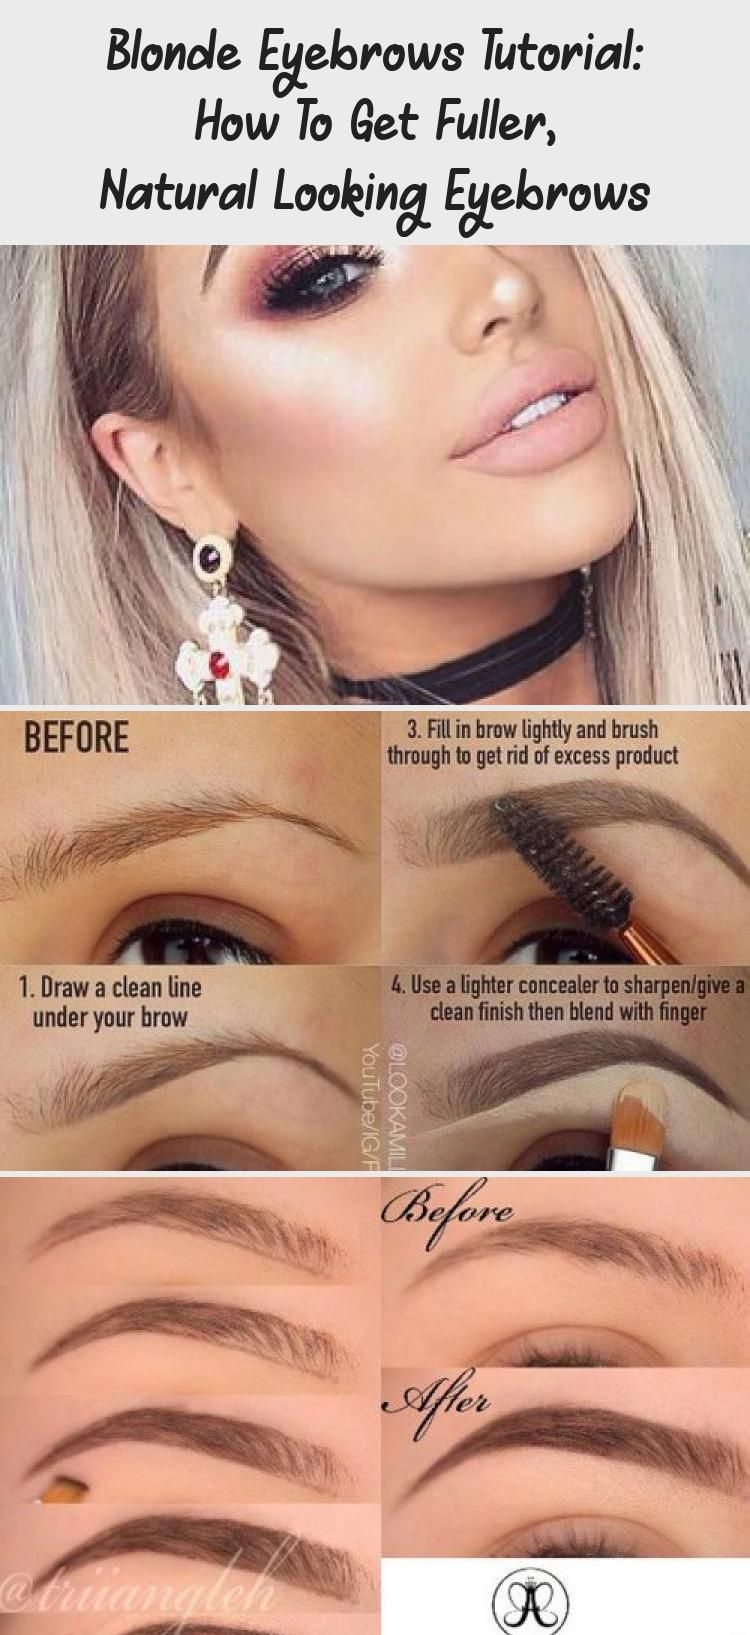 Blonde Eyebrows May Be Not So Easy To Deal With But There Is Nothing Impossible In This Life Besides We Are Always In 2020 Eyebrow Tutorial Blonde Eyebrows Eyebrows